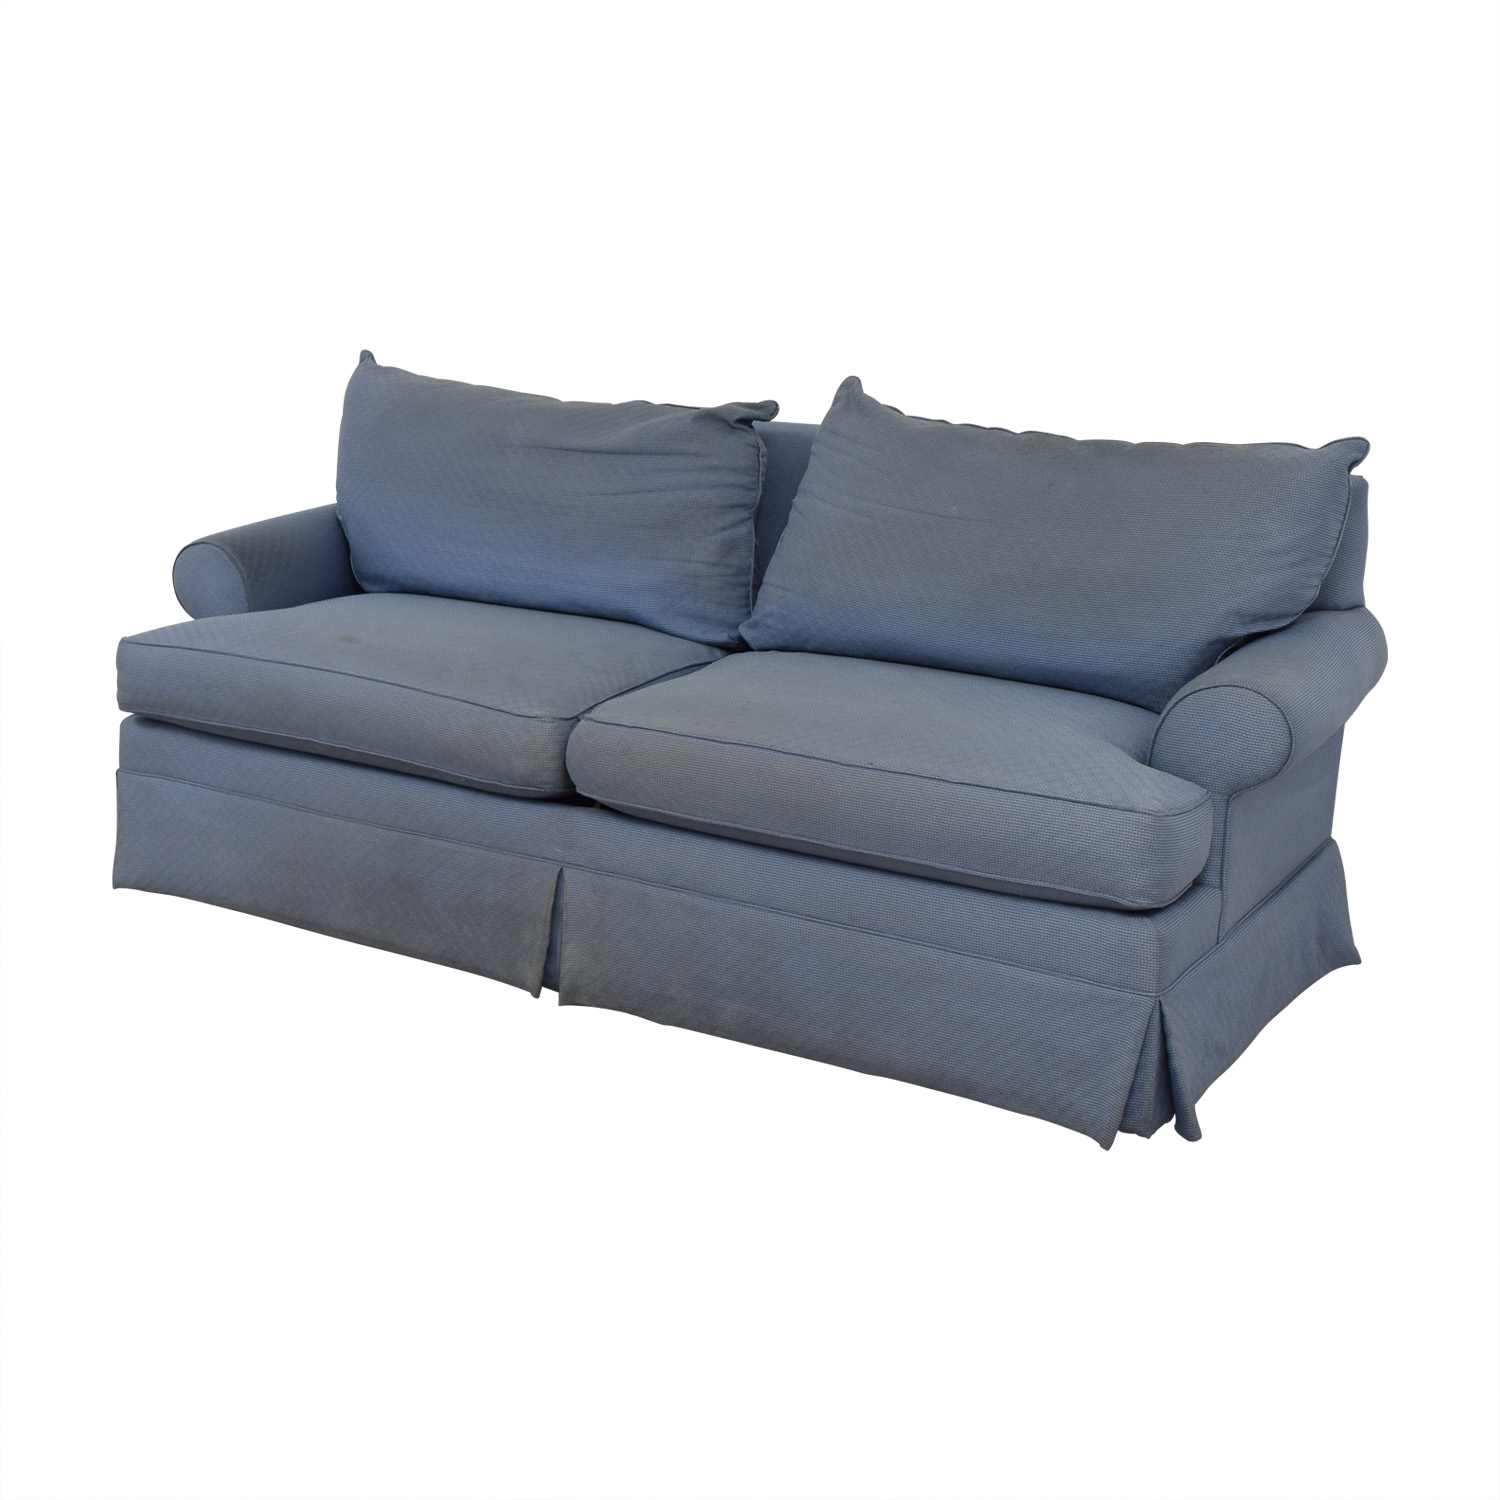 86 Off Ethan Allen Ethan Allen Blue Two Cushion Sofa Sofas